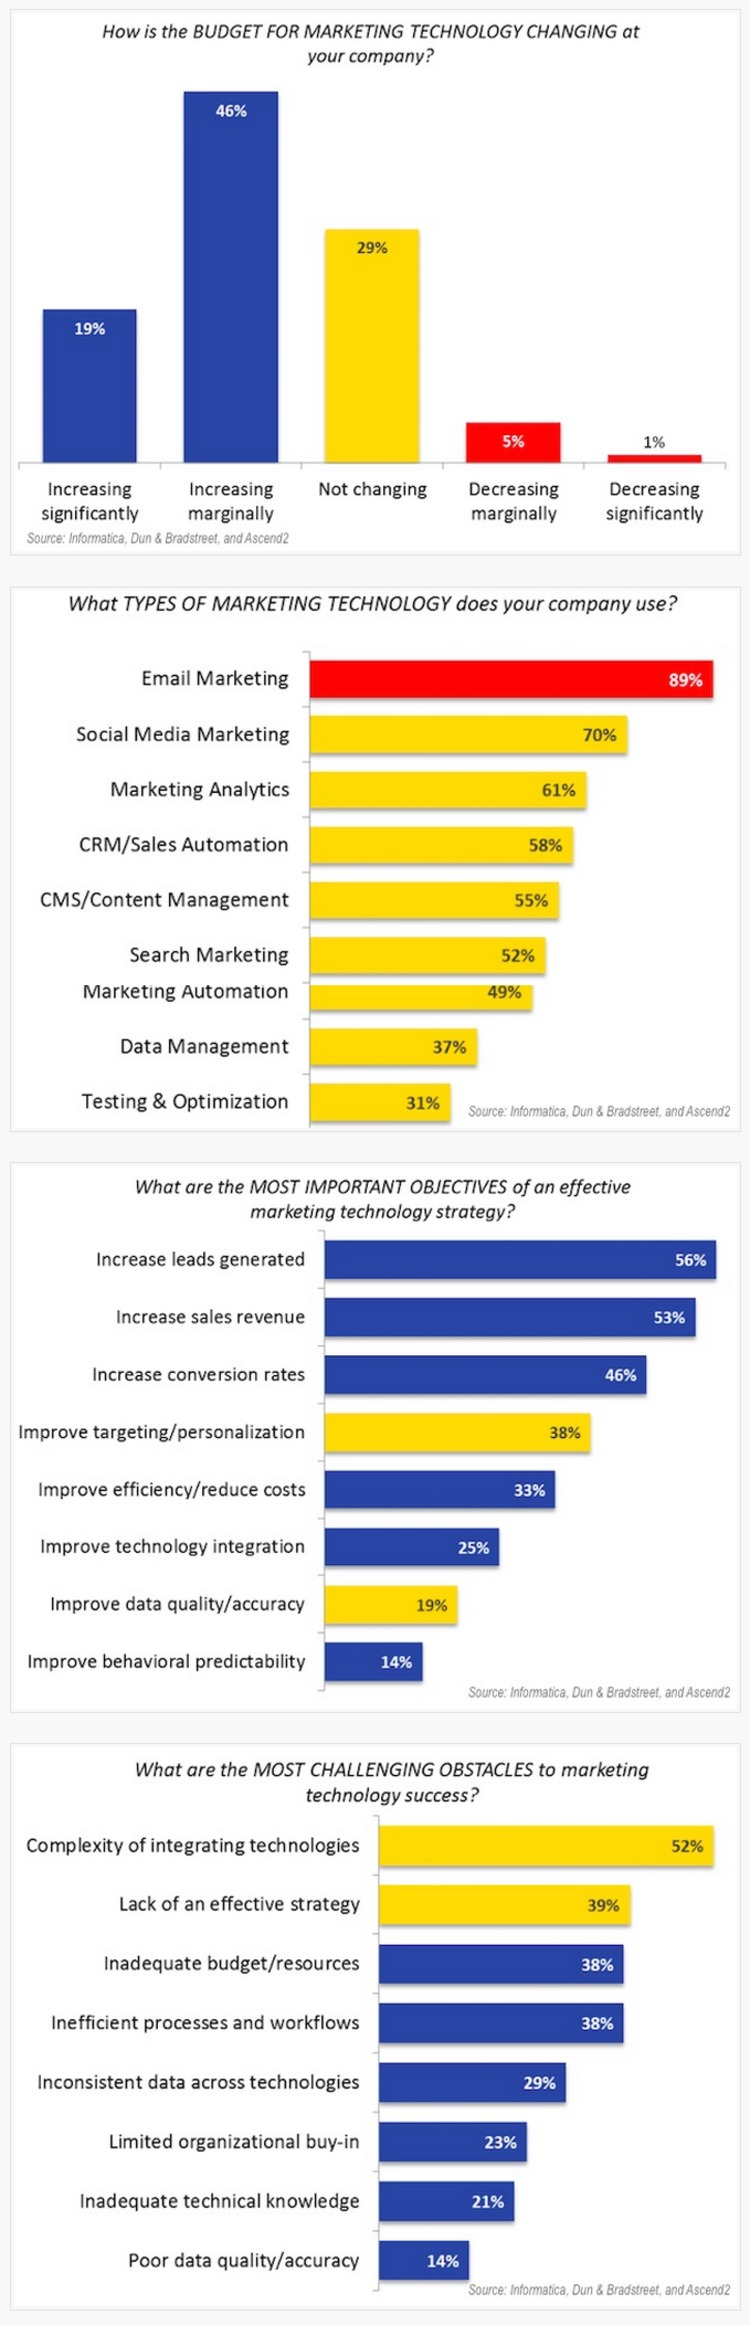 B2B Marketing Technology: Top Tools, Objectives, and Challenges - Profs | The Marketing Technology Alert | Scoop.it